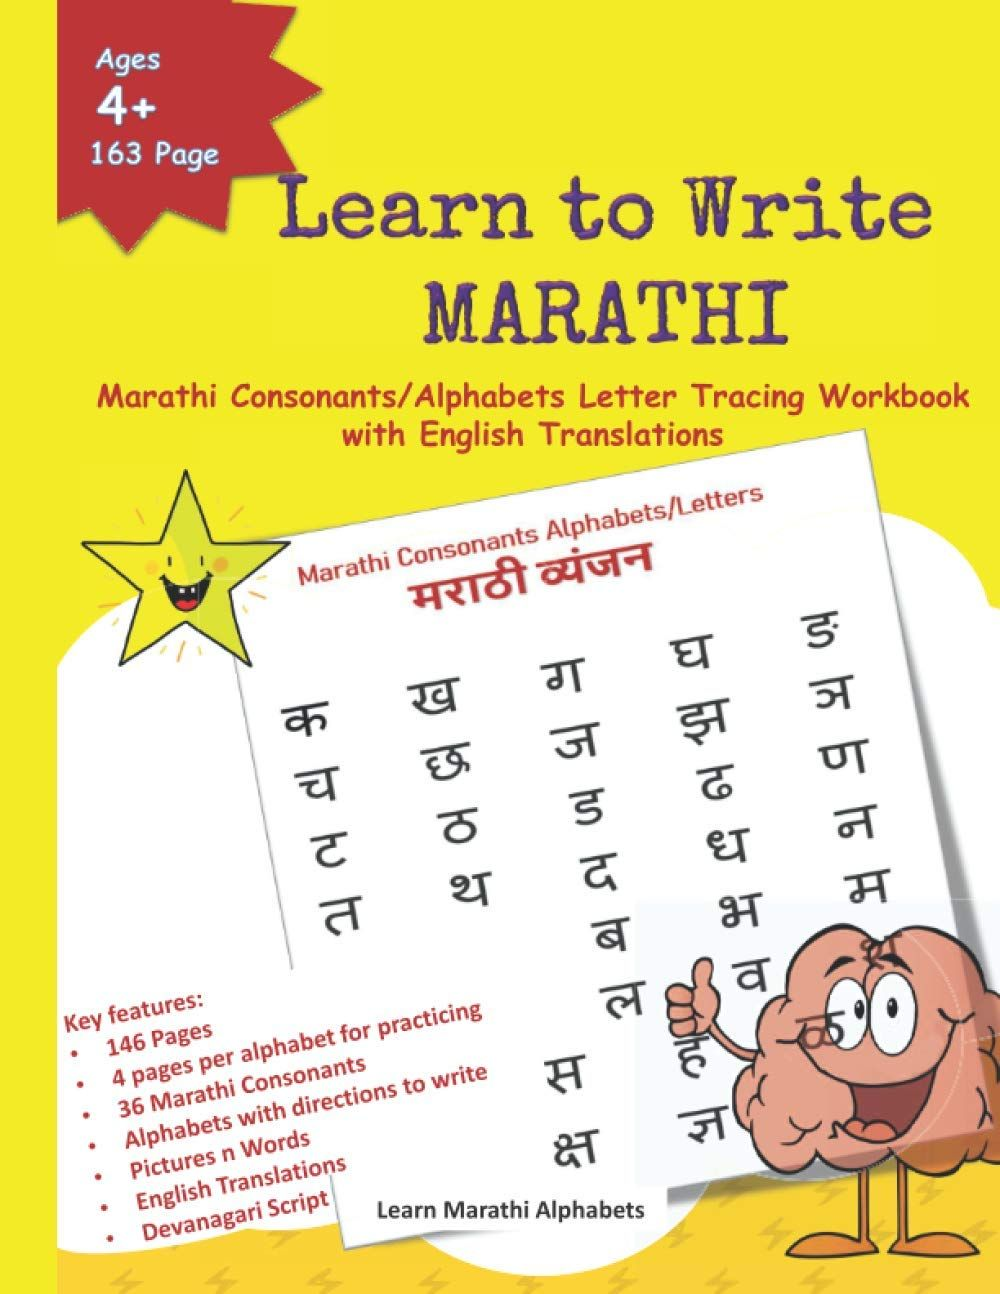 Learn To Write Marathi Marathi Consonants Alphabets Letter Tracing Workbook With English In 2021 Learning To Write Tracing Letters Lettering Alphabet [ 1294 x 1000 Pixel ]